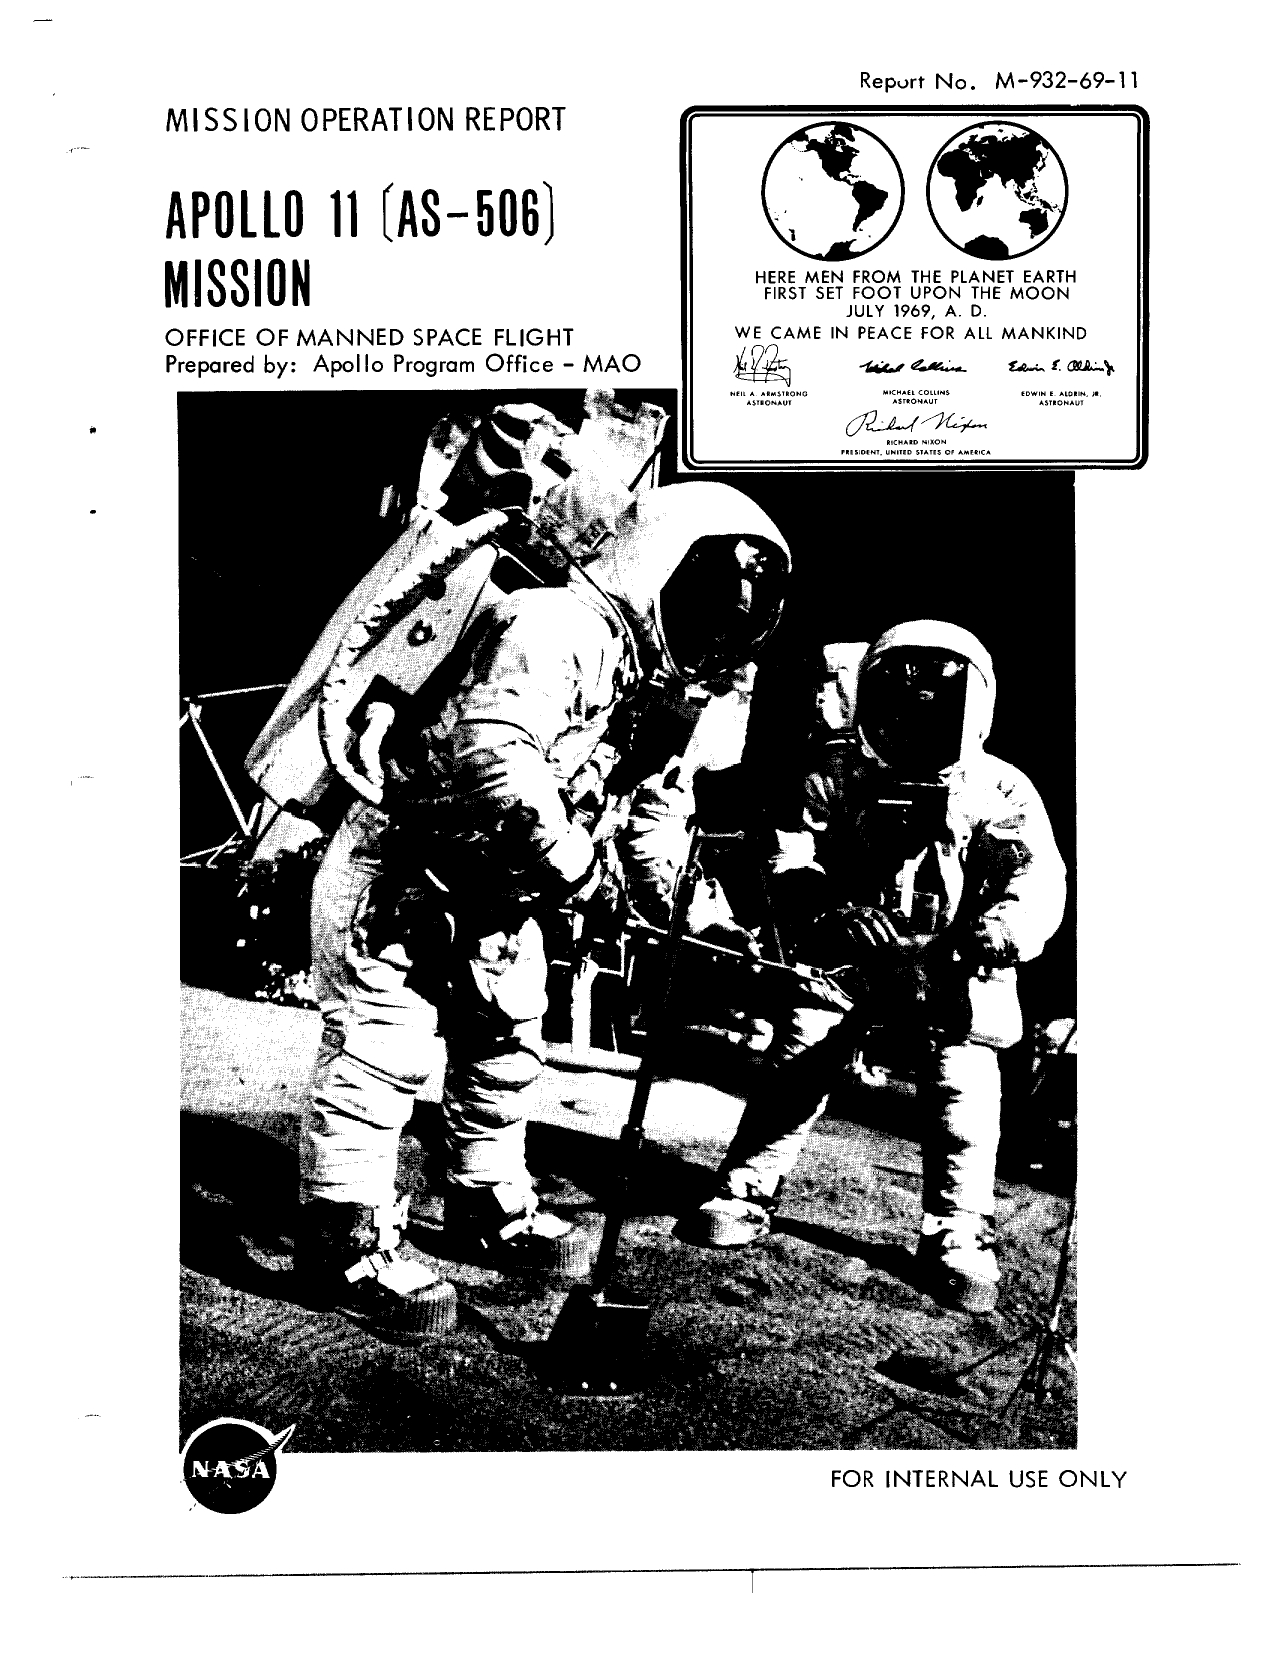 Apollo 11 - Mission Operation Report (MOR)